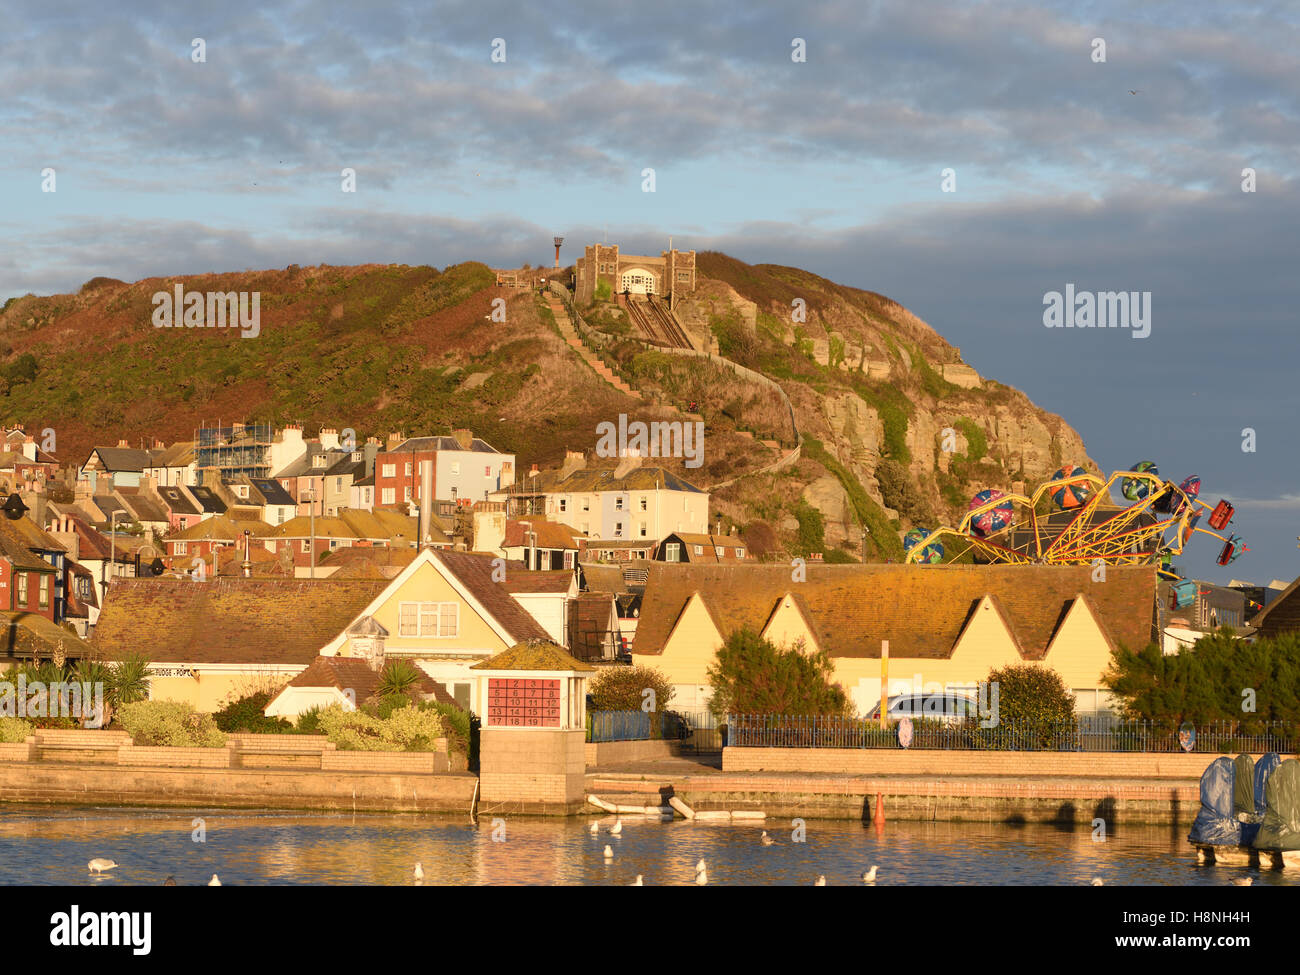 Hastings Old Town, the amusement park, Rock-A-Nore and the East Hill Cliff Railway or East Hill Lift, the  funicular - Stock Image